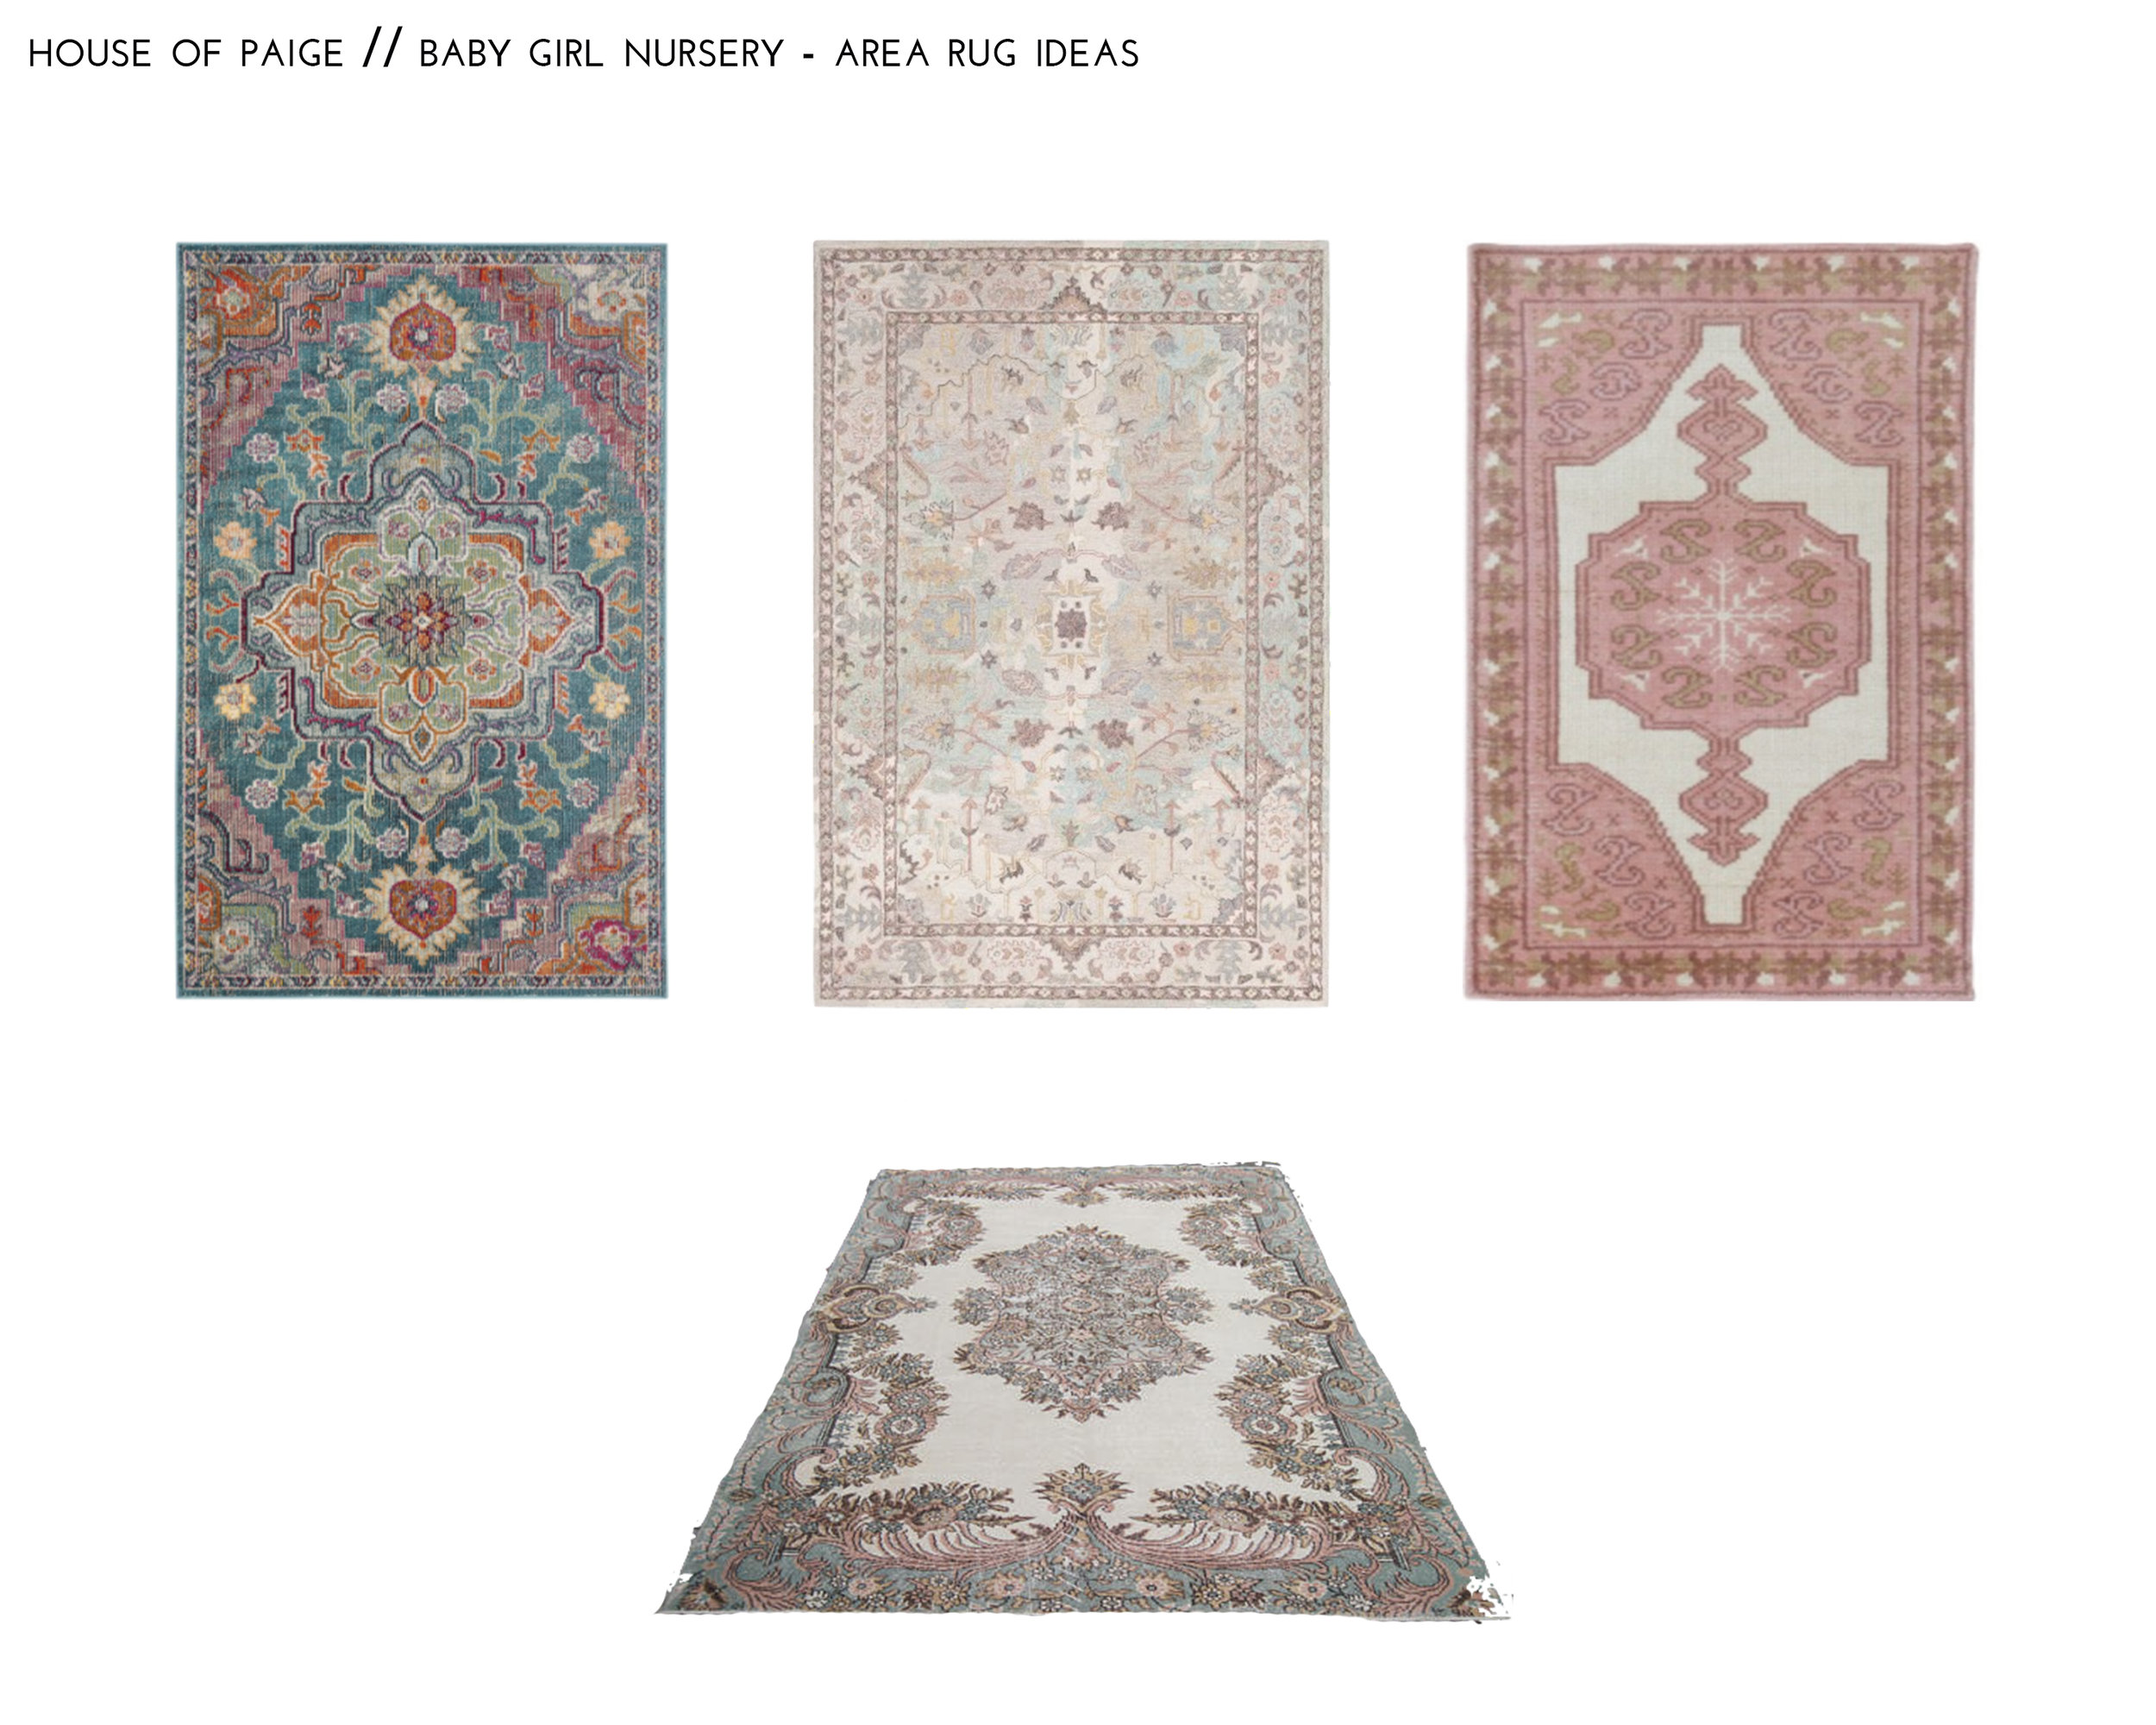 HouseofPaige_Nursery Rug Ideas.jpg